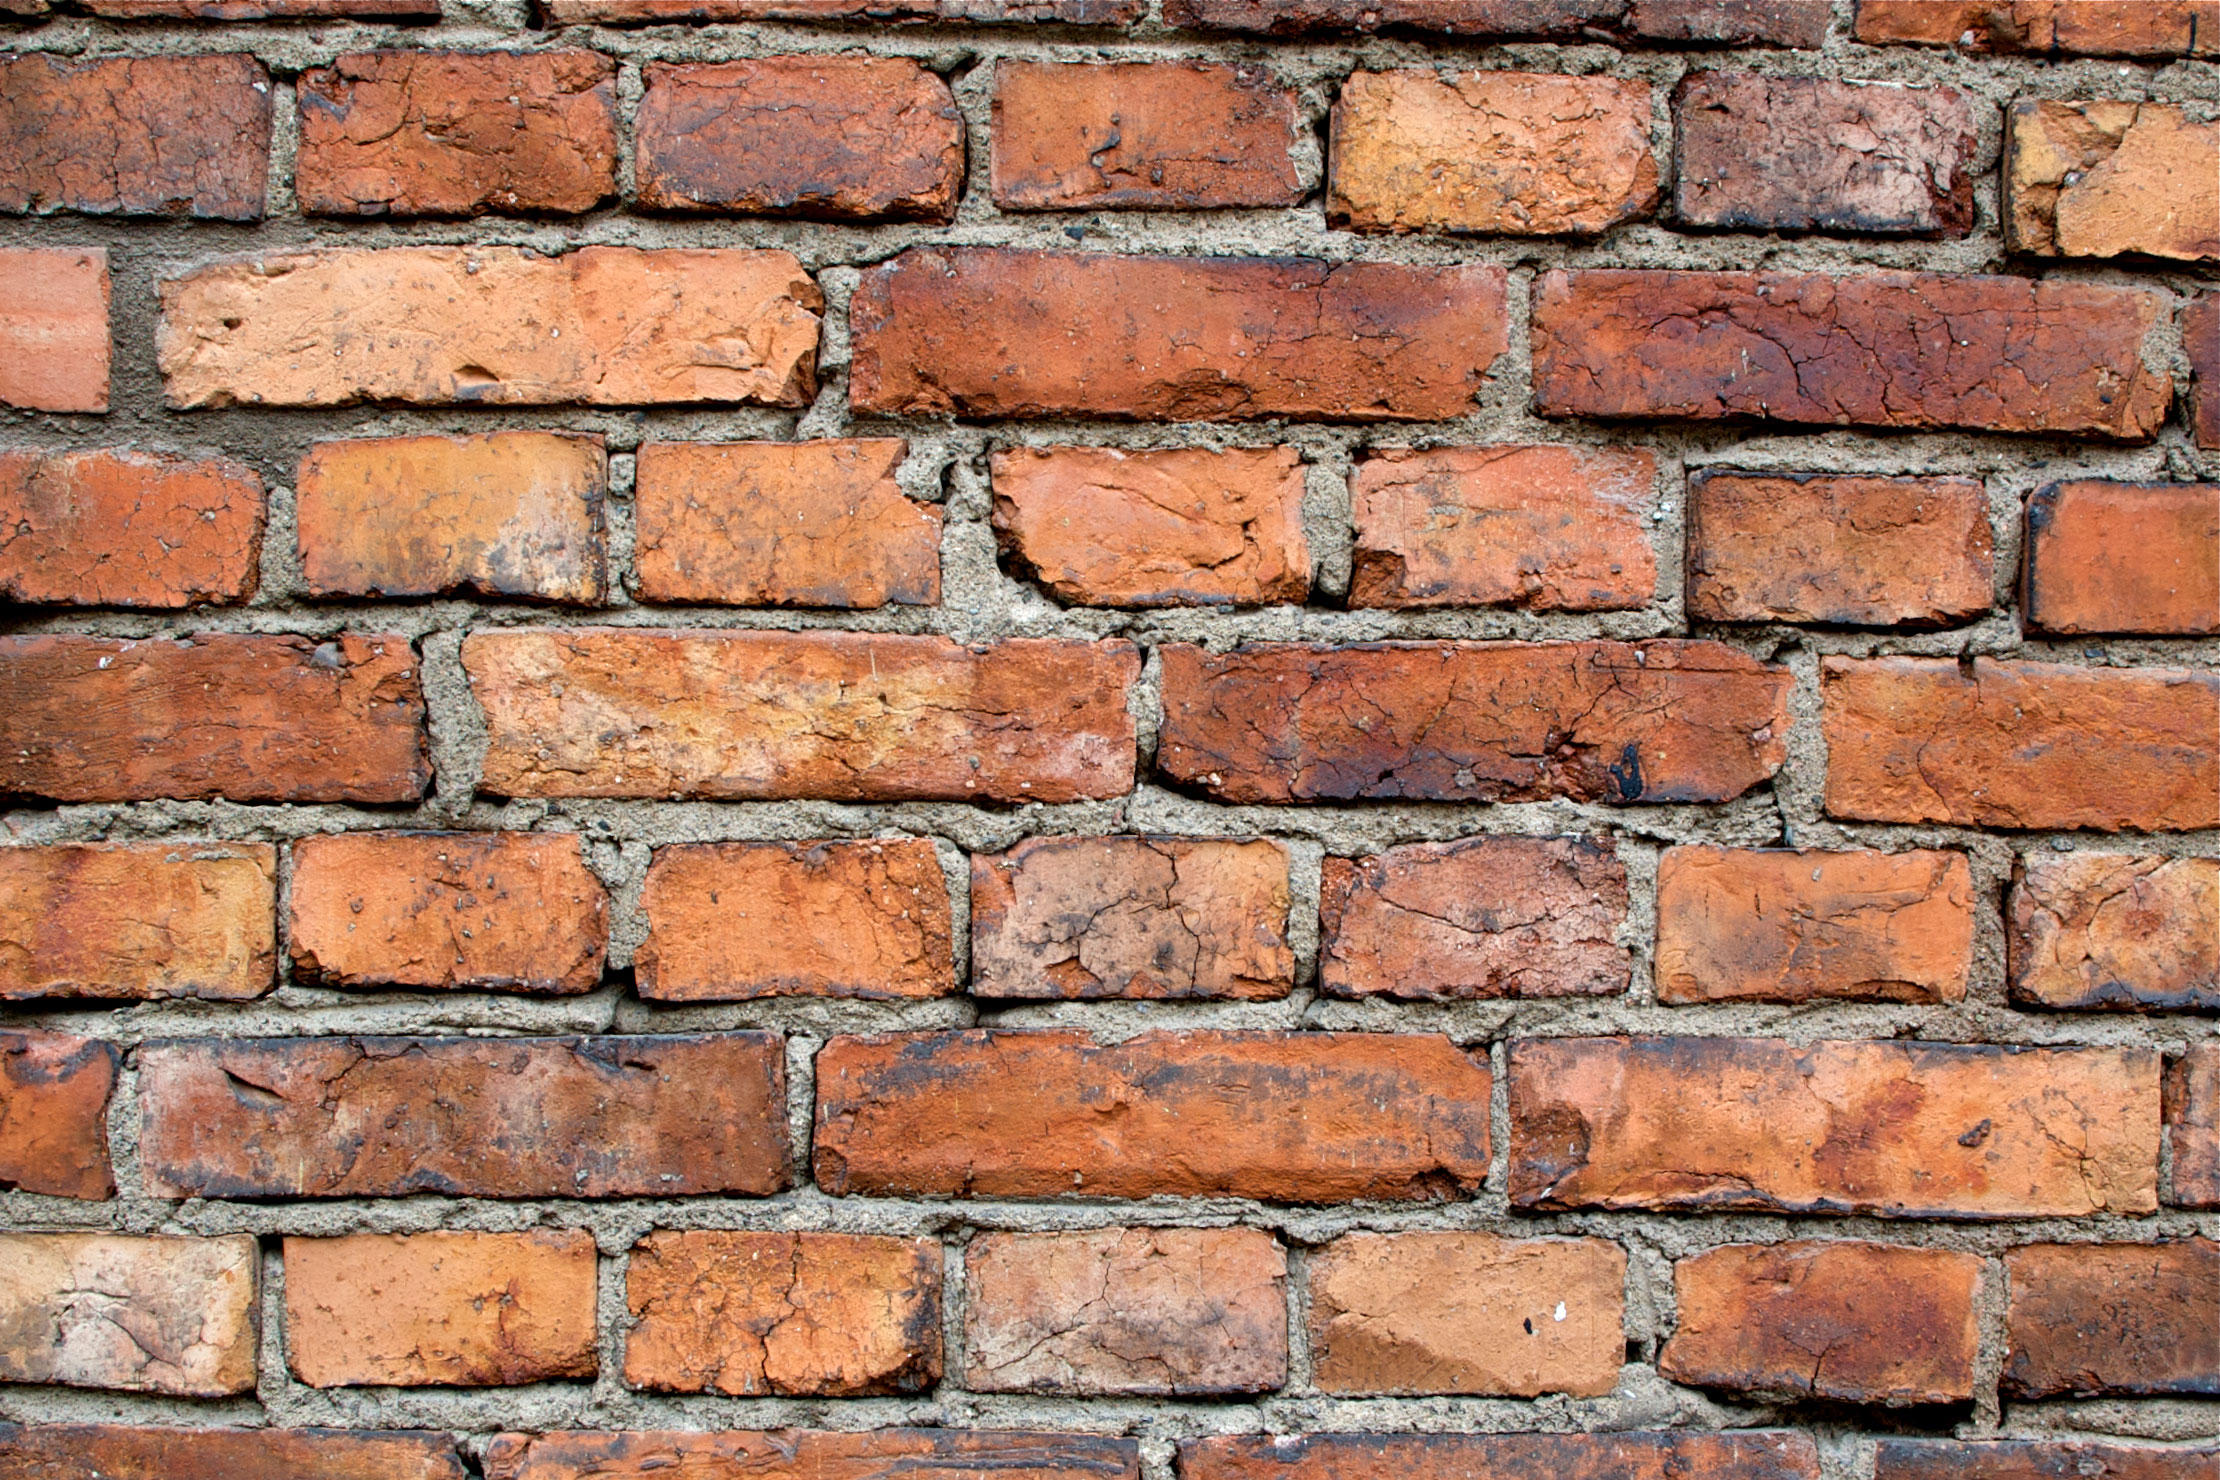 Brick wall: Brady Solicitors